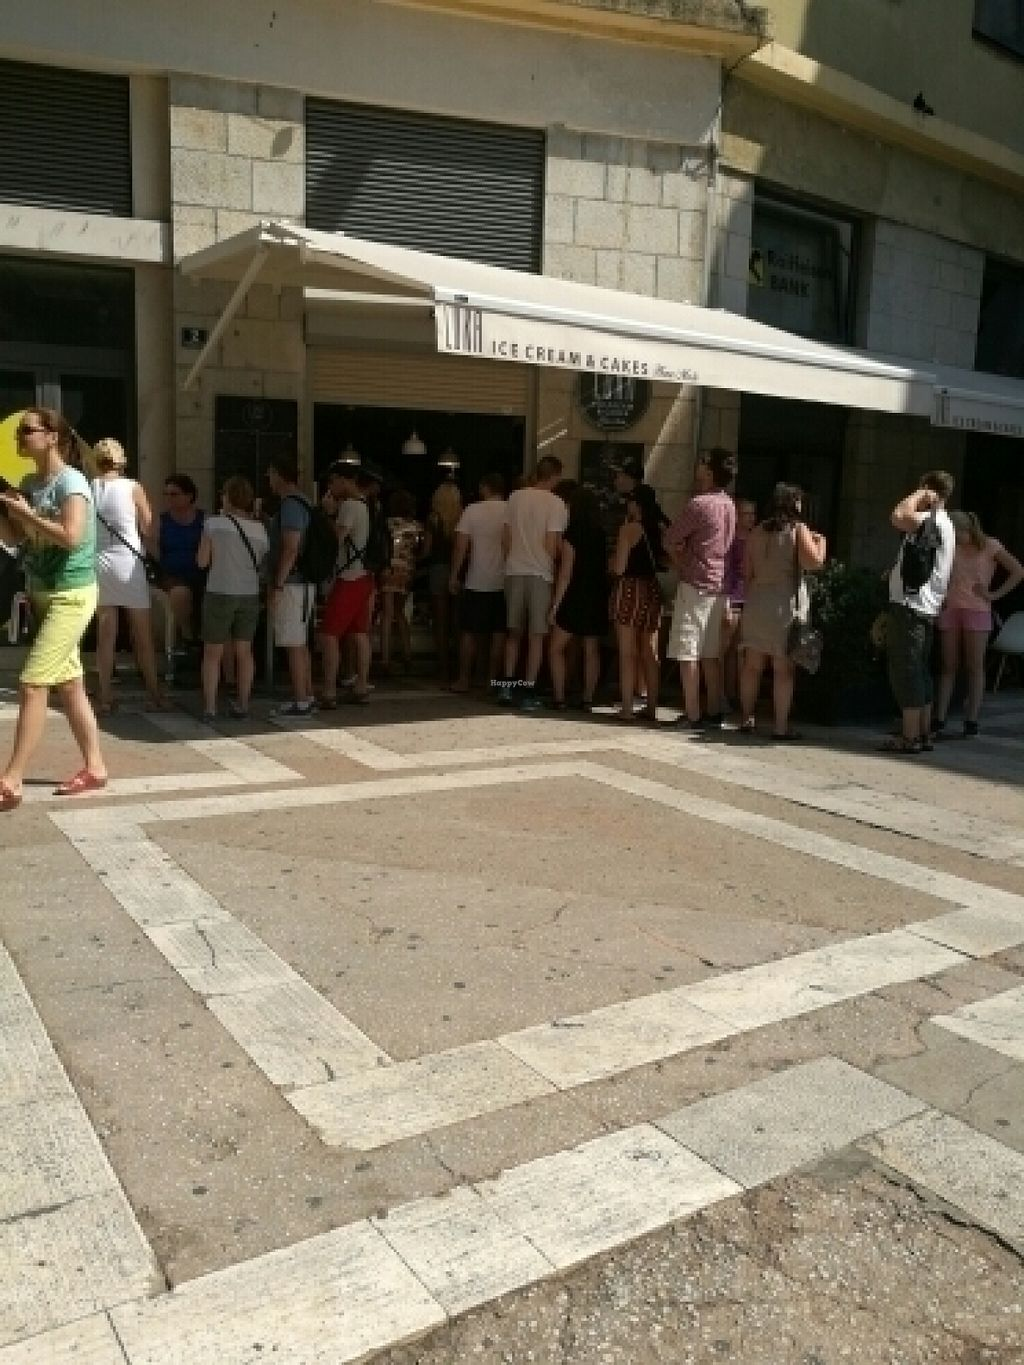 """Photo of Luka Ice Cream & Cakes  by <a href=""""/members/profile/YoungJa"""">YoungJa</a> <br/>never ending line for luka ice cream  <br/> July 29, 2016  - <a href='/contact/abuse/image/76434/163179'>Report</a>"""